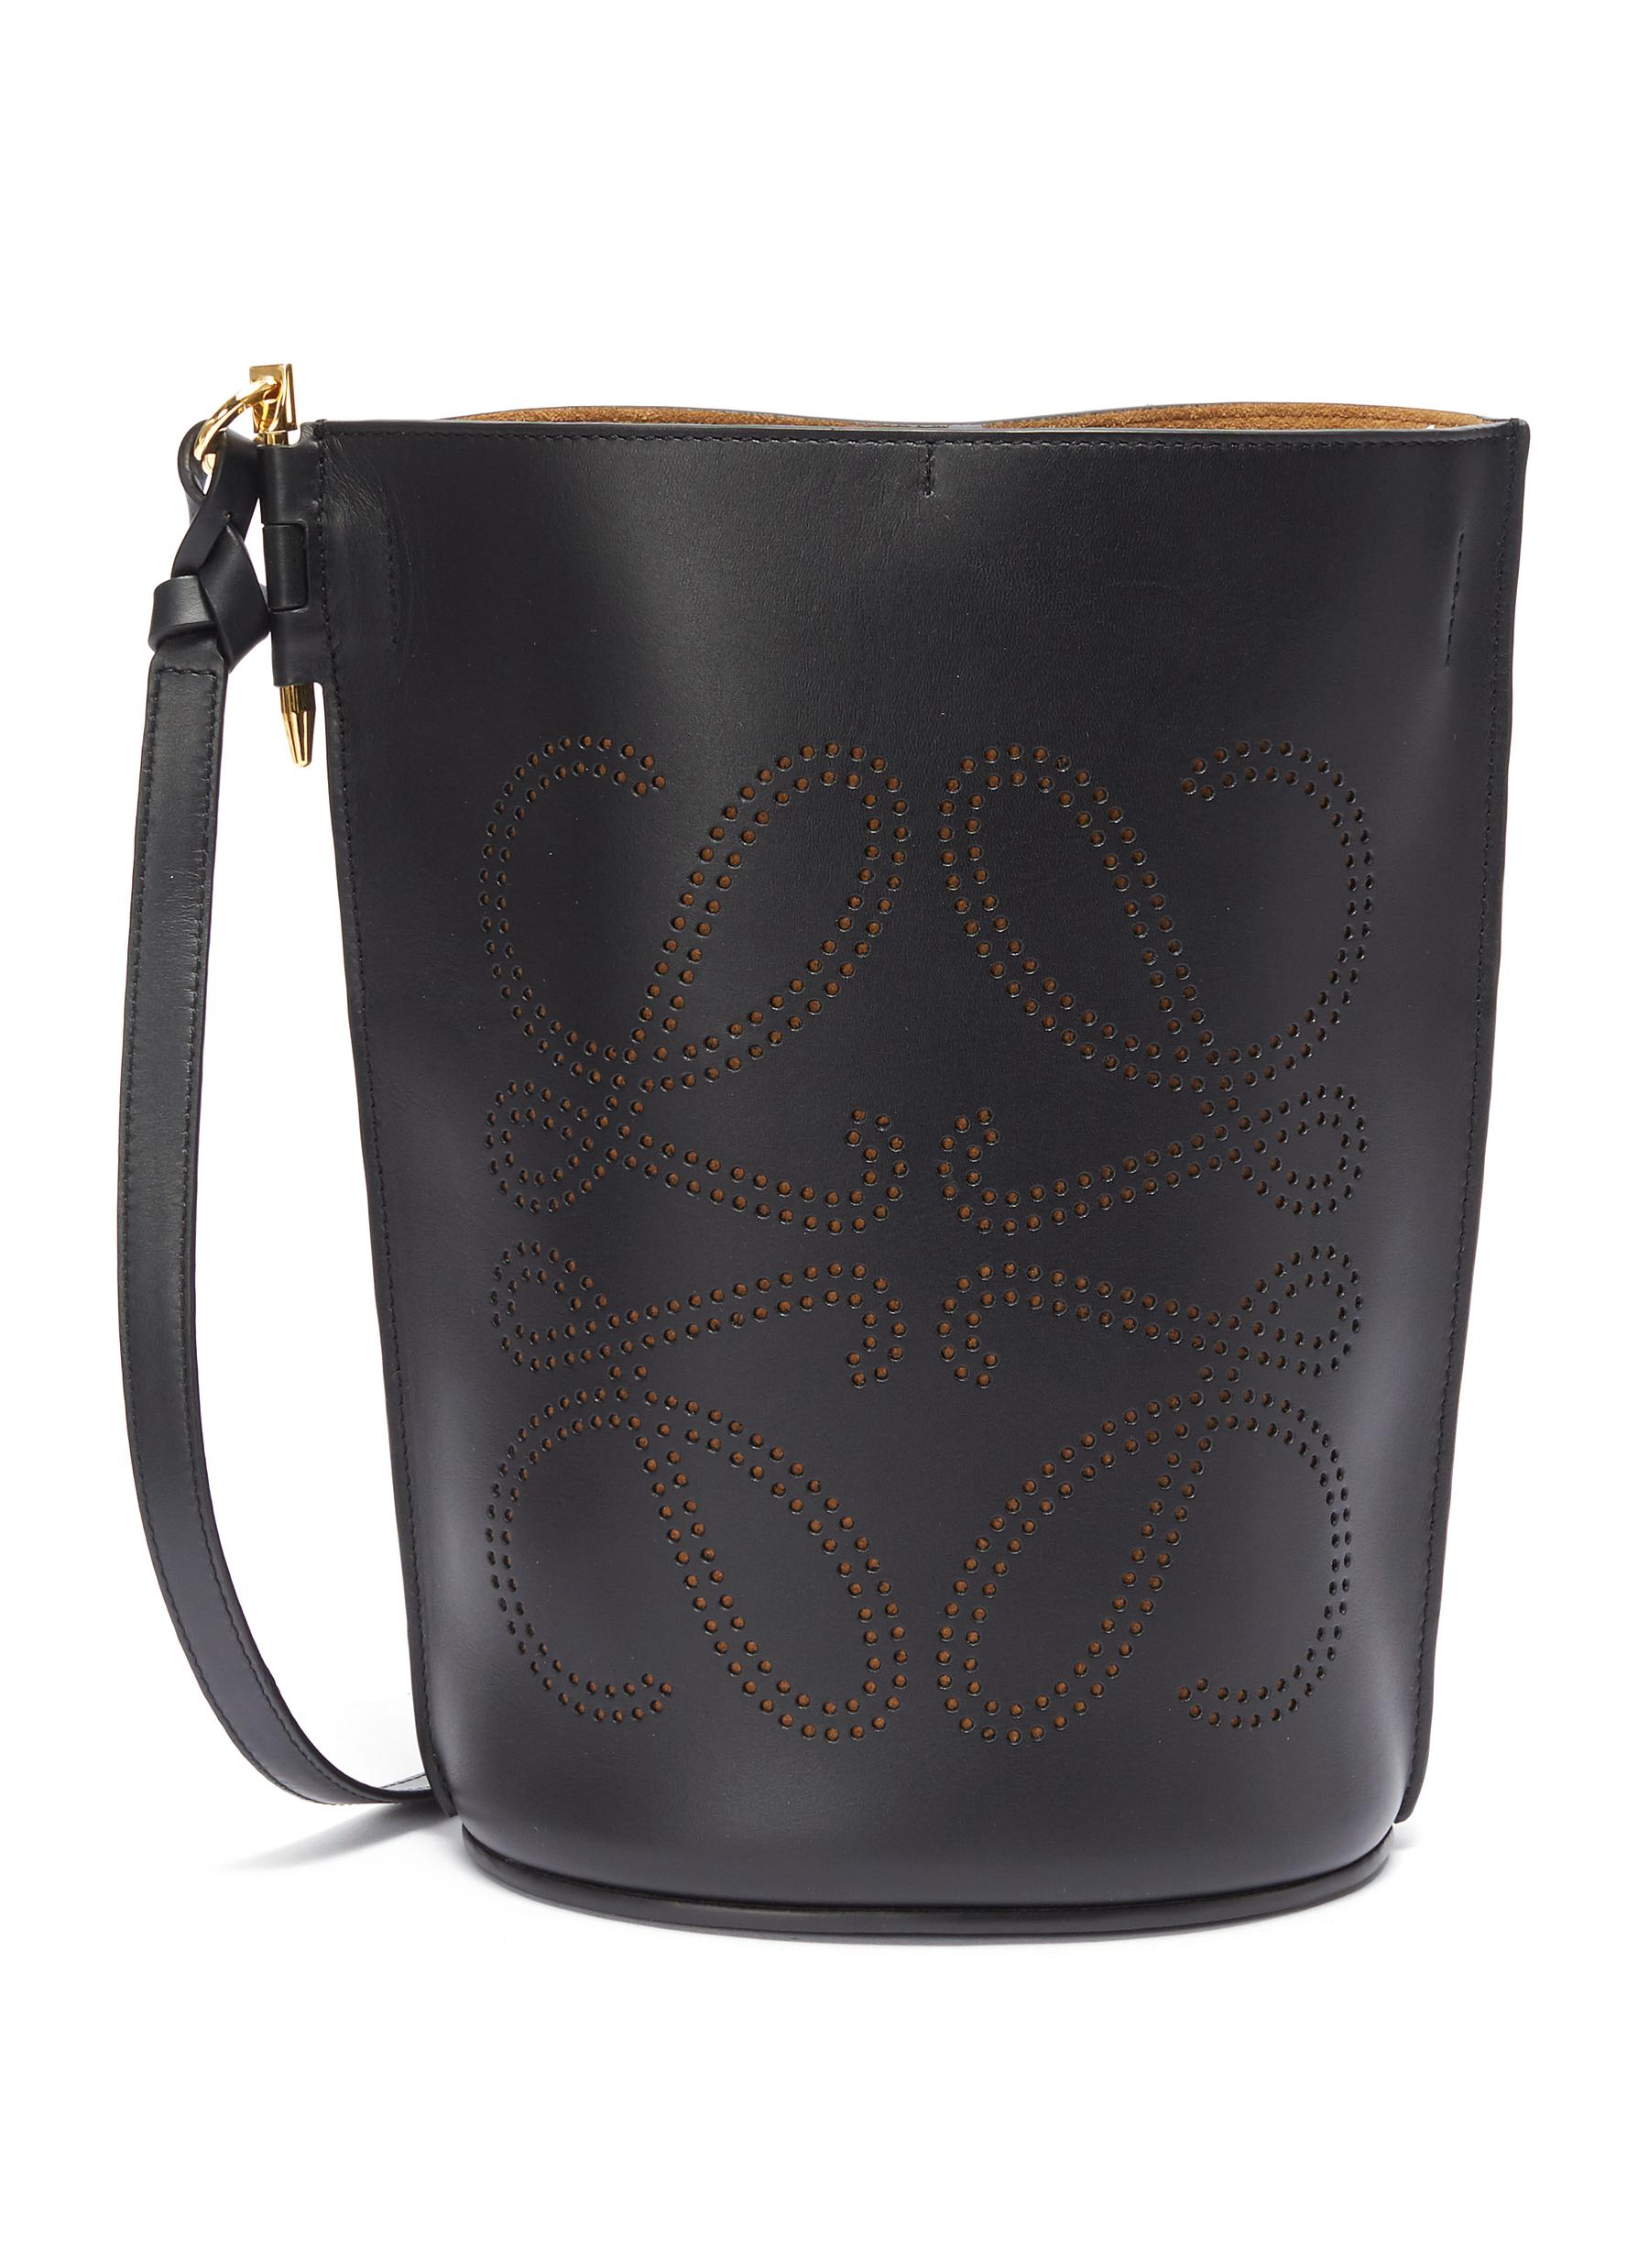 'Gate' perforated anagram leather bucket bag